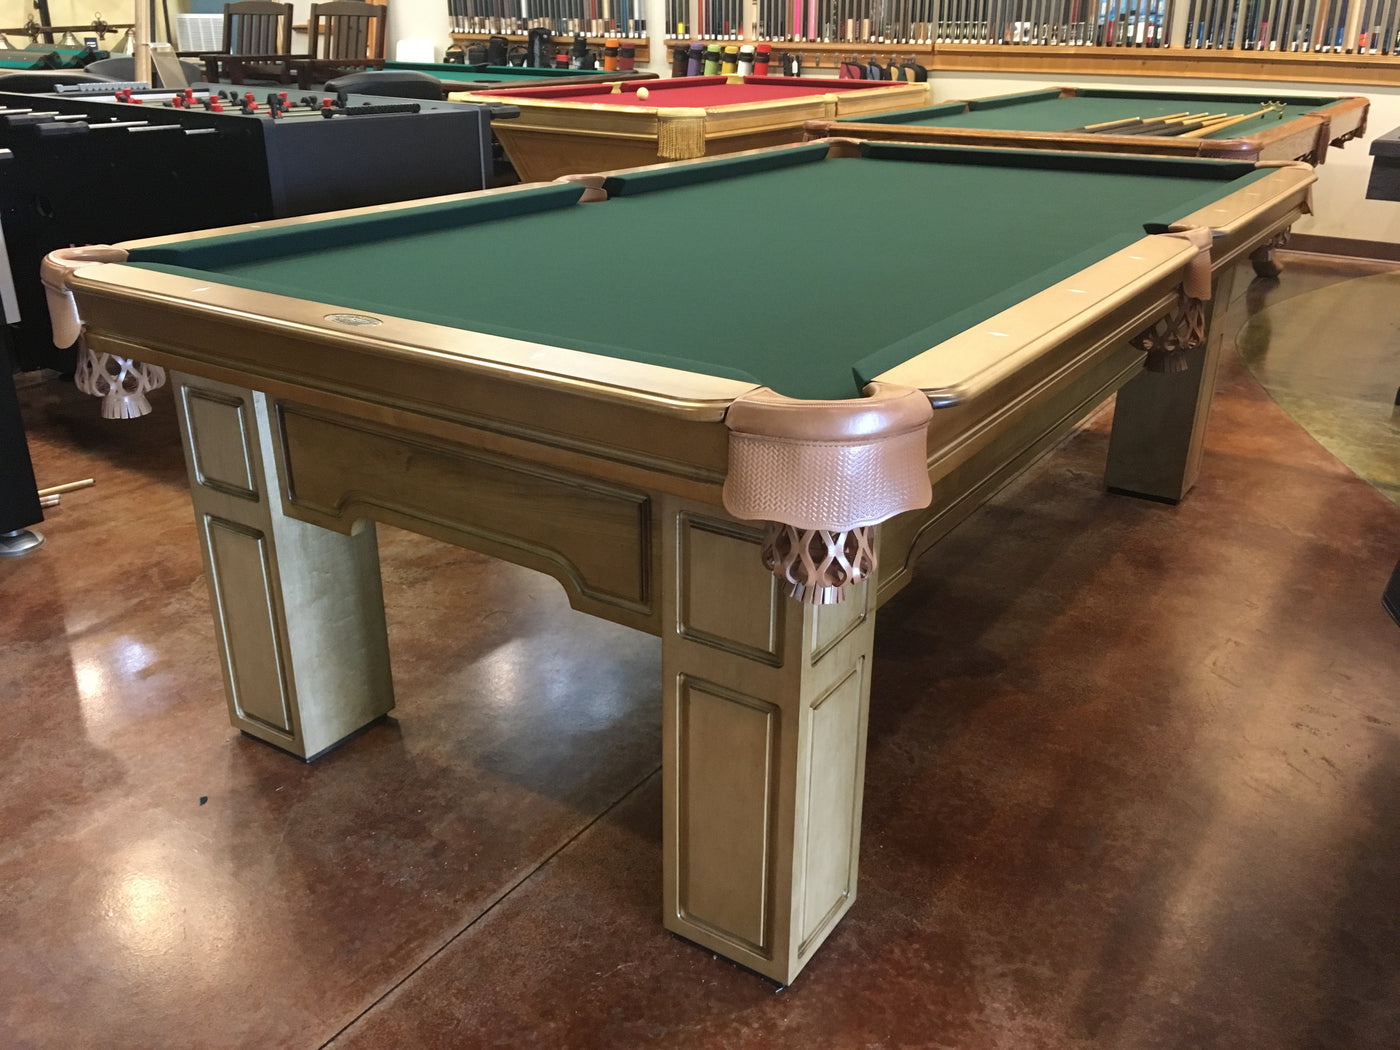 Olhausen Pool Table Best Home Interior - Olhausen 30th anniversary pool table price